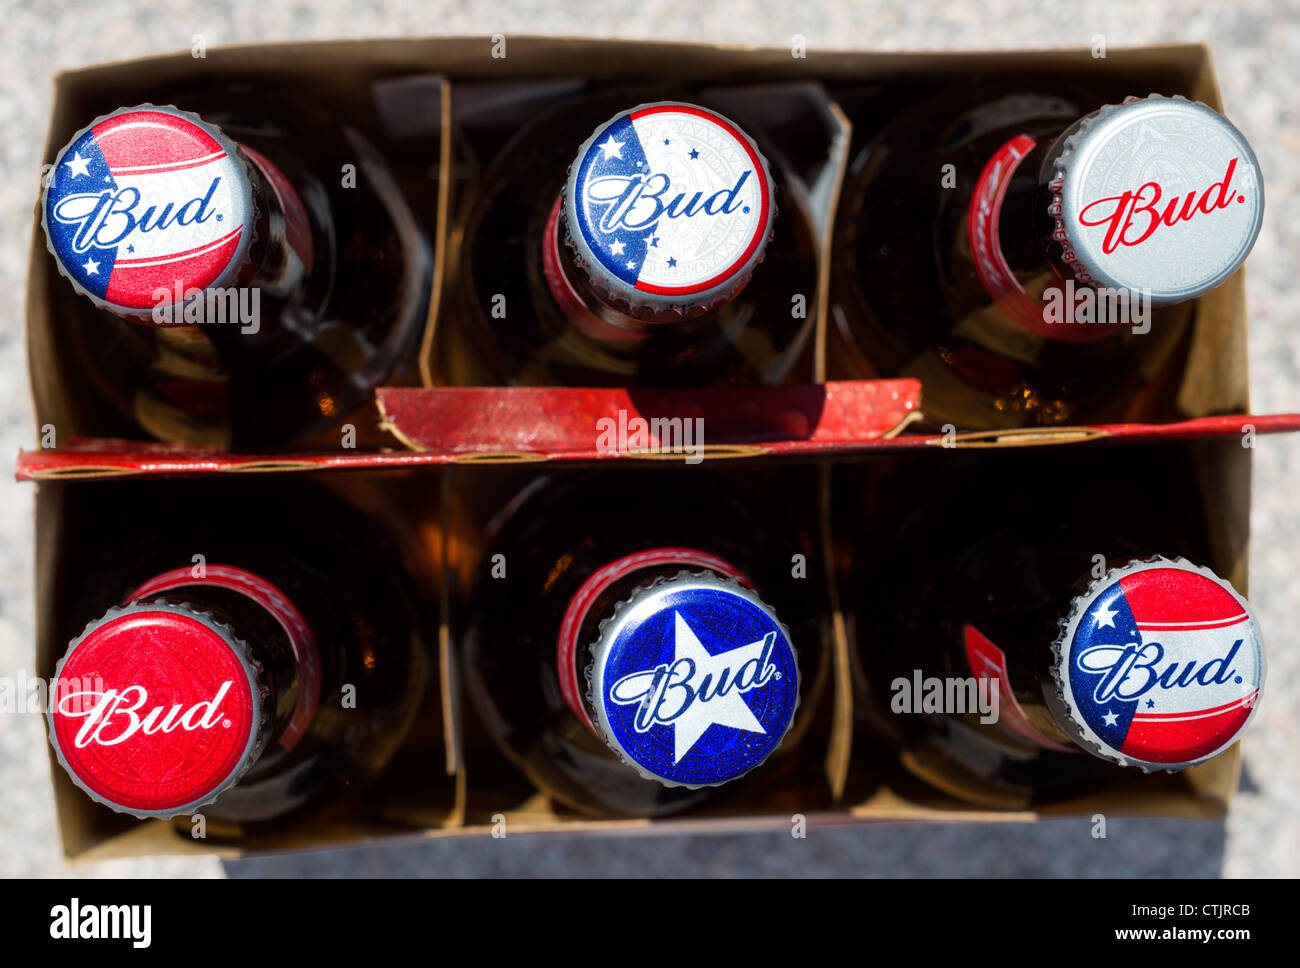 A Six Pack of bottles of Budweiser beer with varied caps, USA - Stock Image